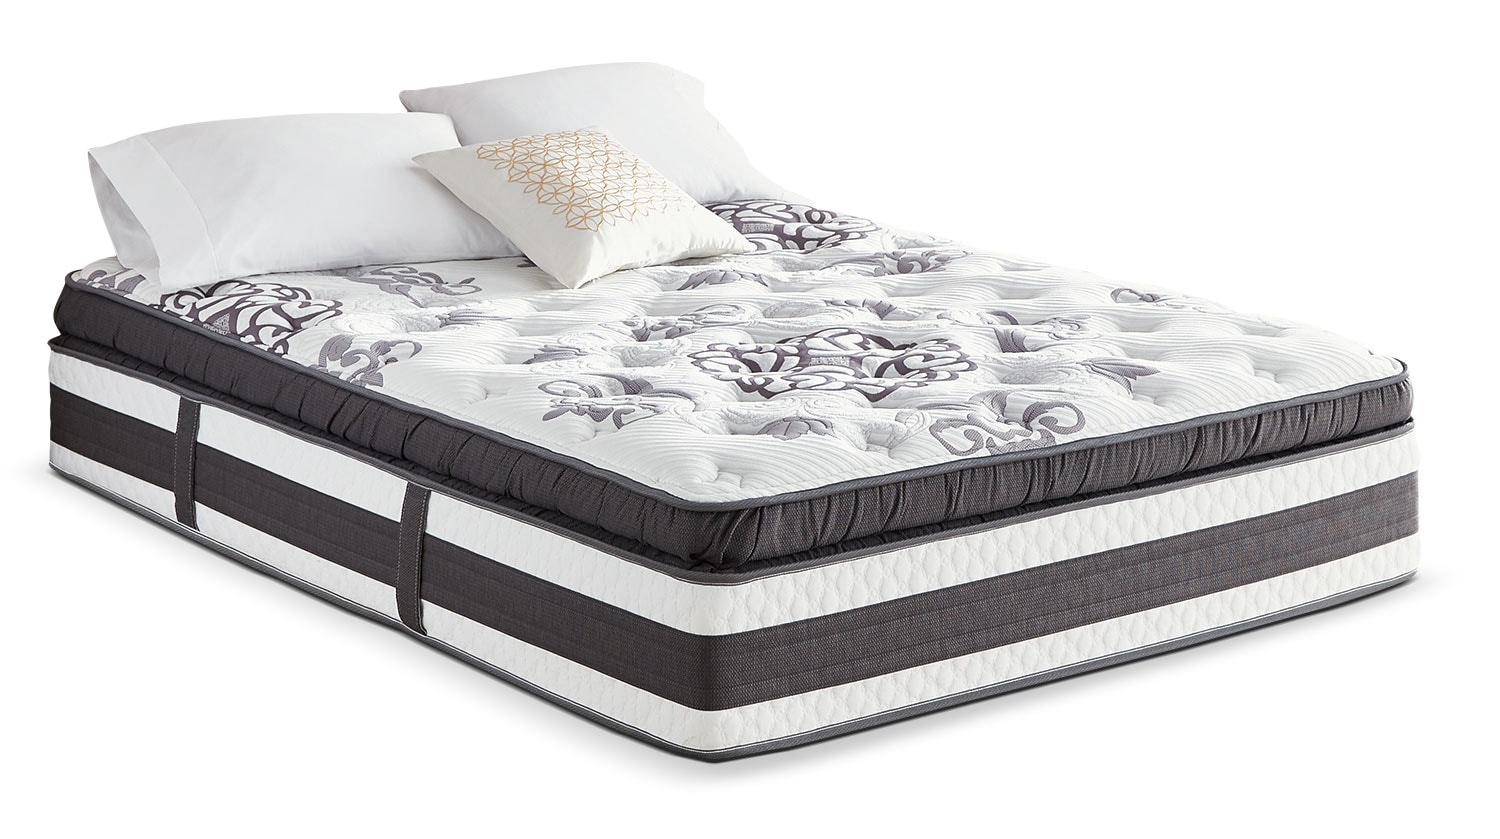 Mattresses and Bedding - Serta iCollection Hopedale Super Pillow-Top Plush Twin XL Mattress